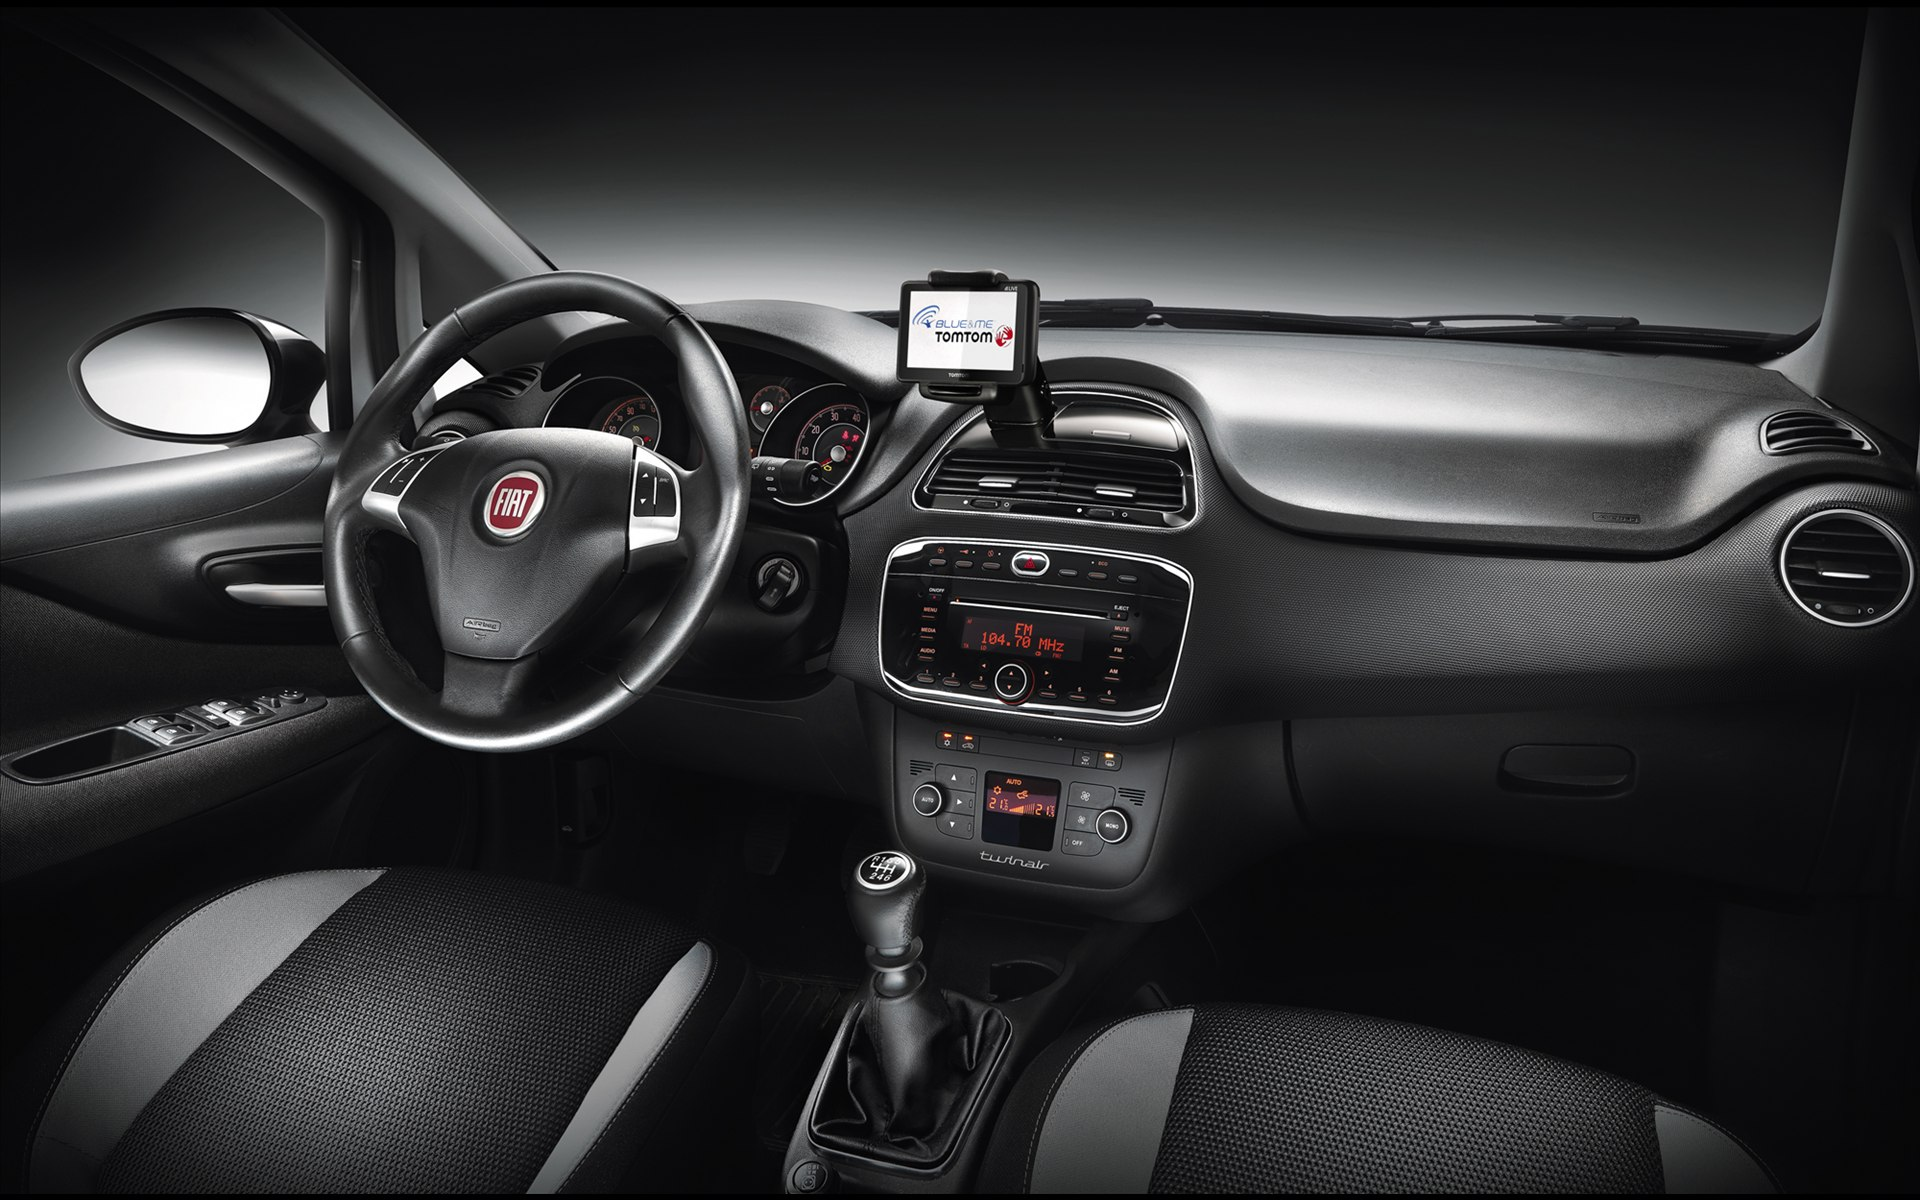 Fiat Punto Interior Wallpaper 1920x1200 10008